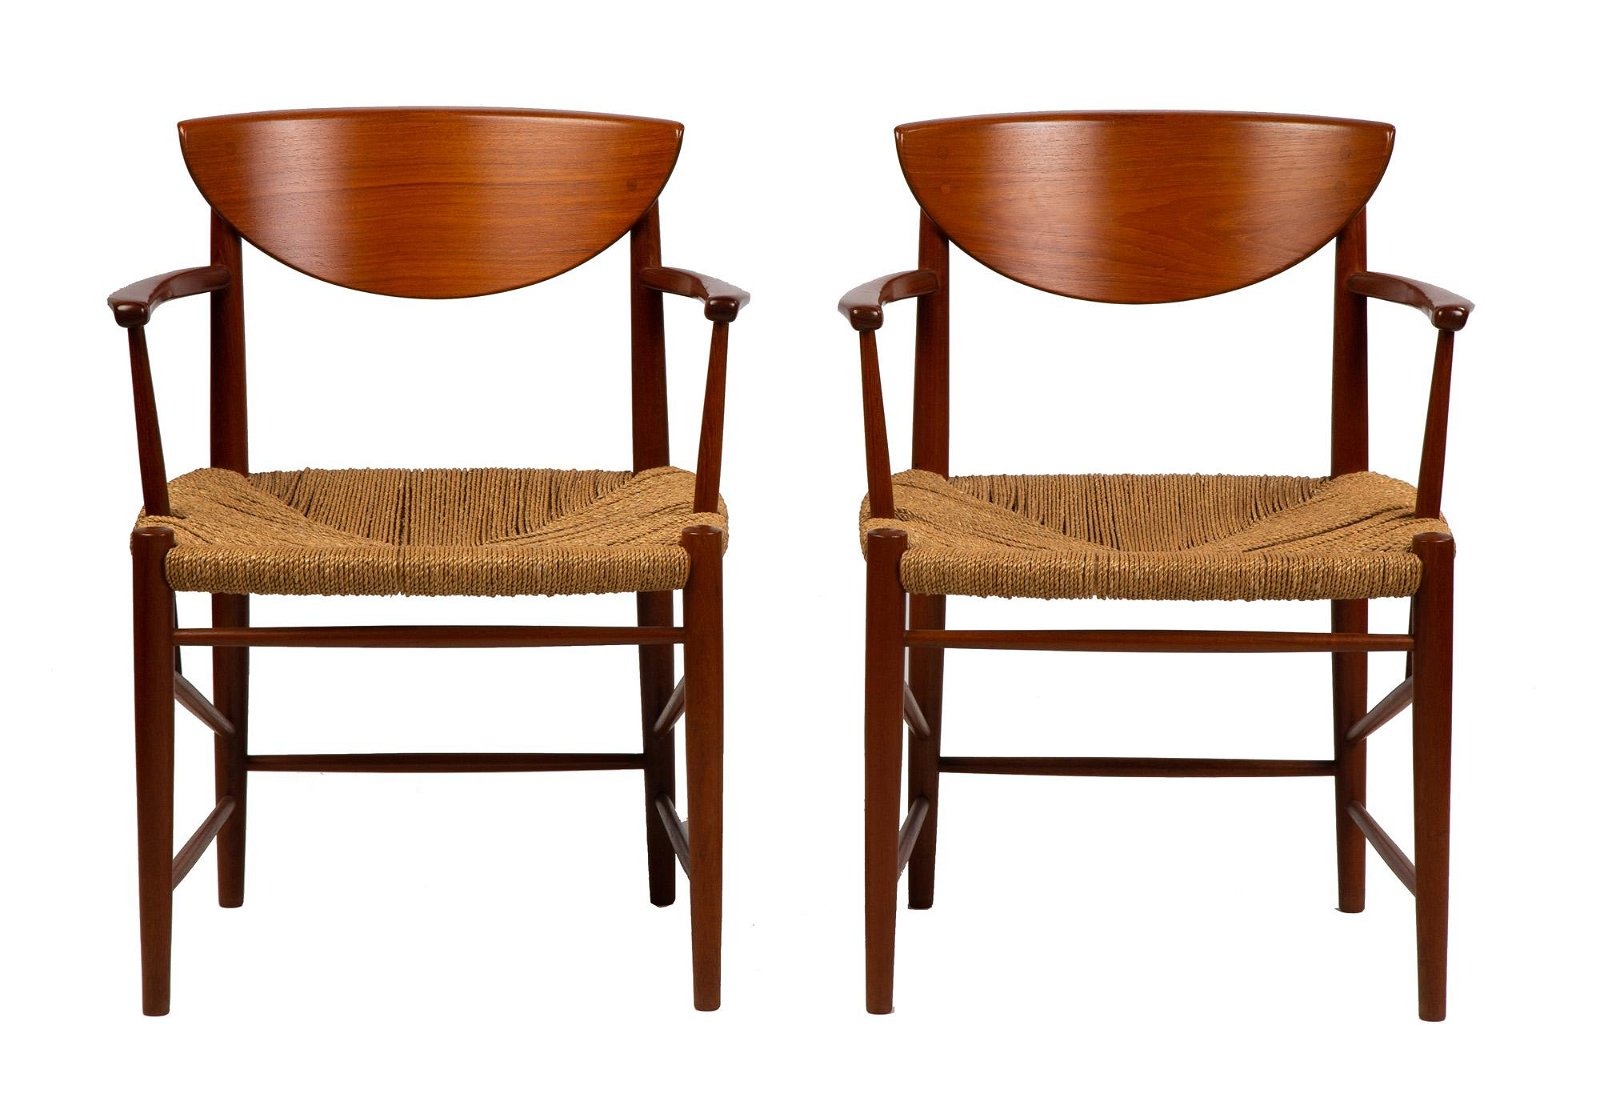 Pair of Peter Hvidt Papercord Chairs